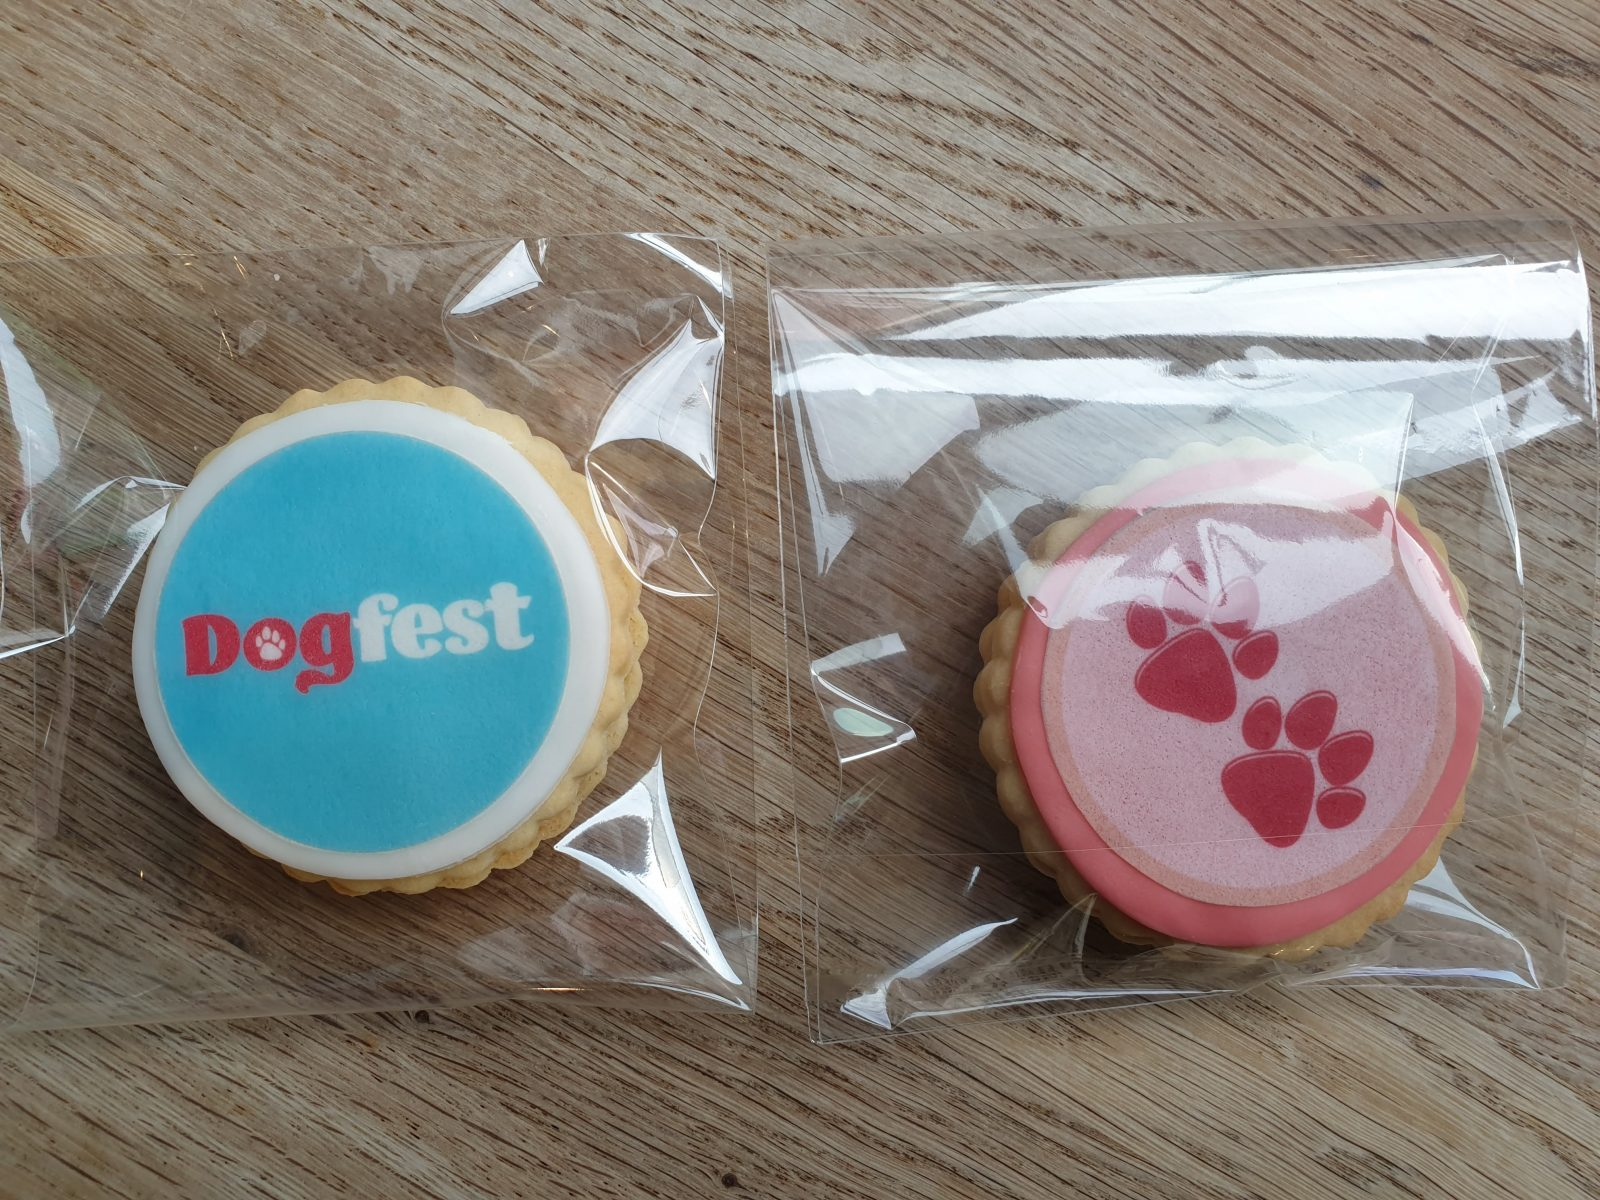 Dog Fest Dog Paw biscuits made by Bloom Bakers